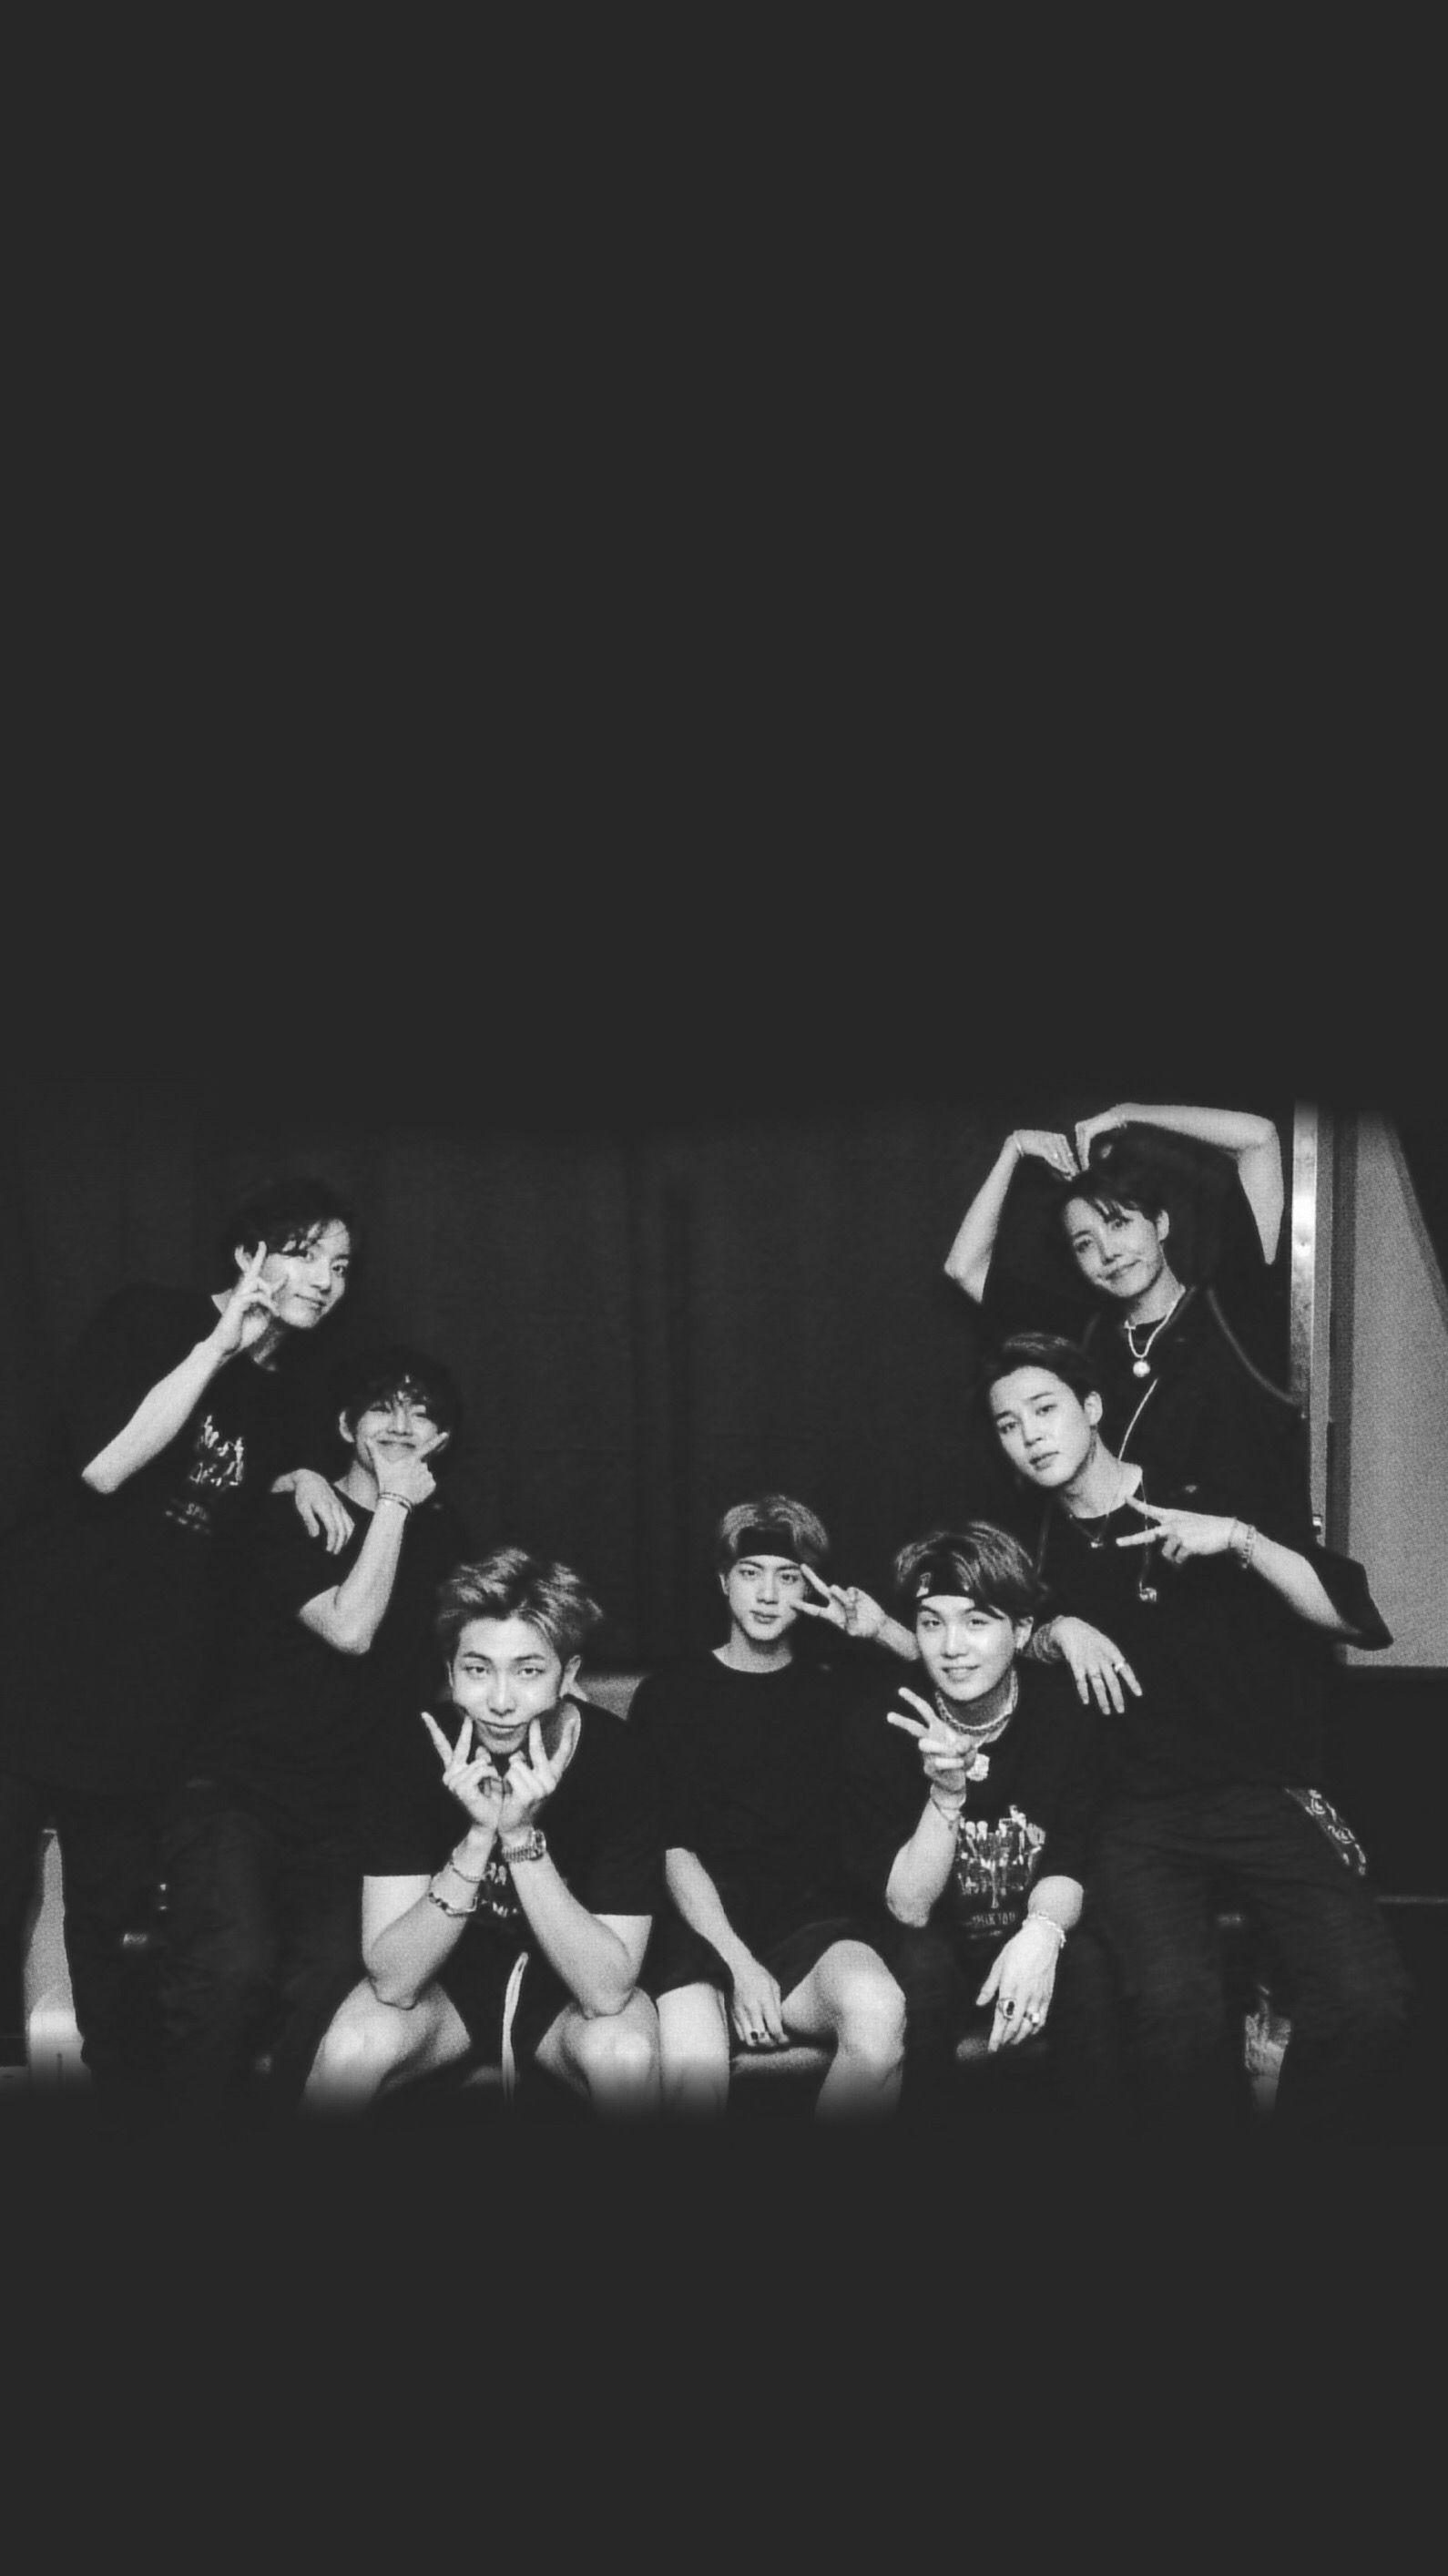 Bts Wallpaper Lock Screen Bw Black And White Wallpaper Iphone Bts Group Photo Wallpaper Black Wallpaper Iphone